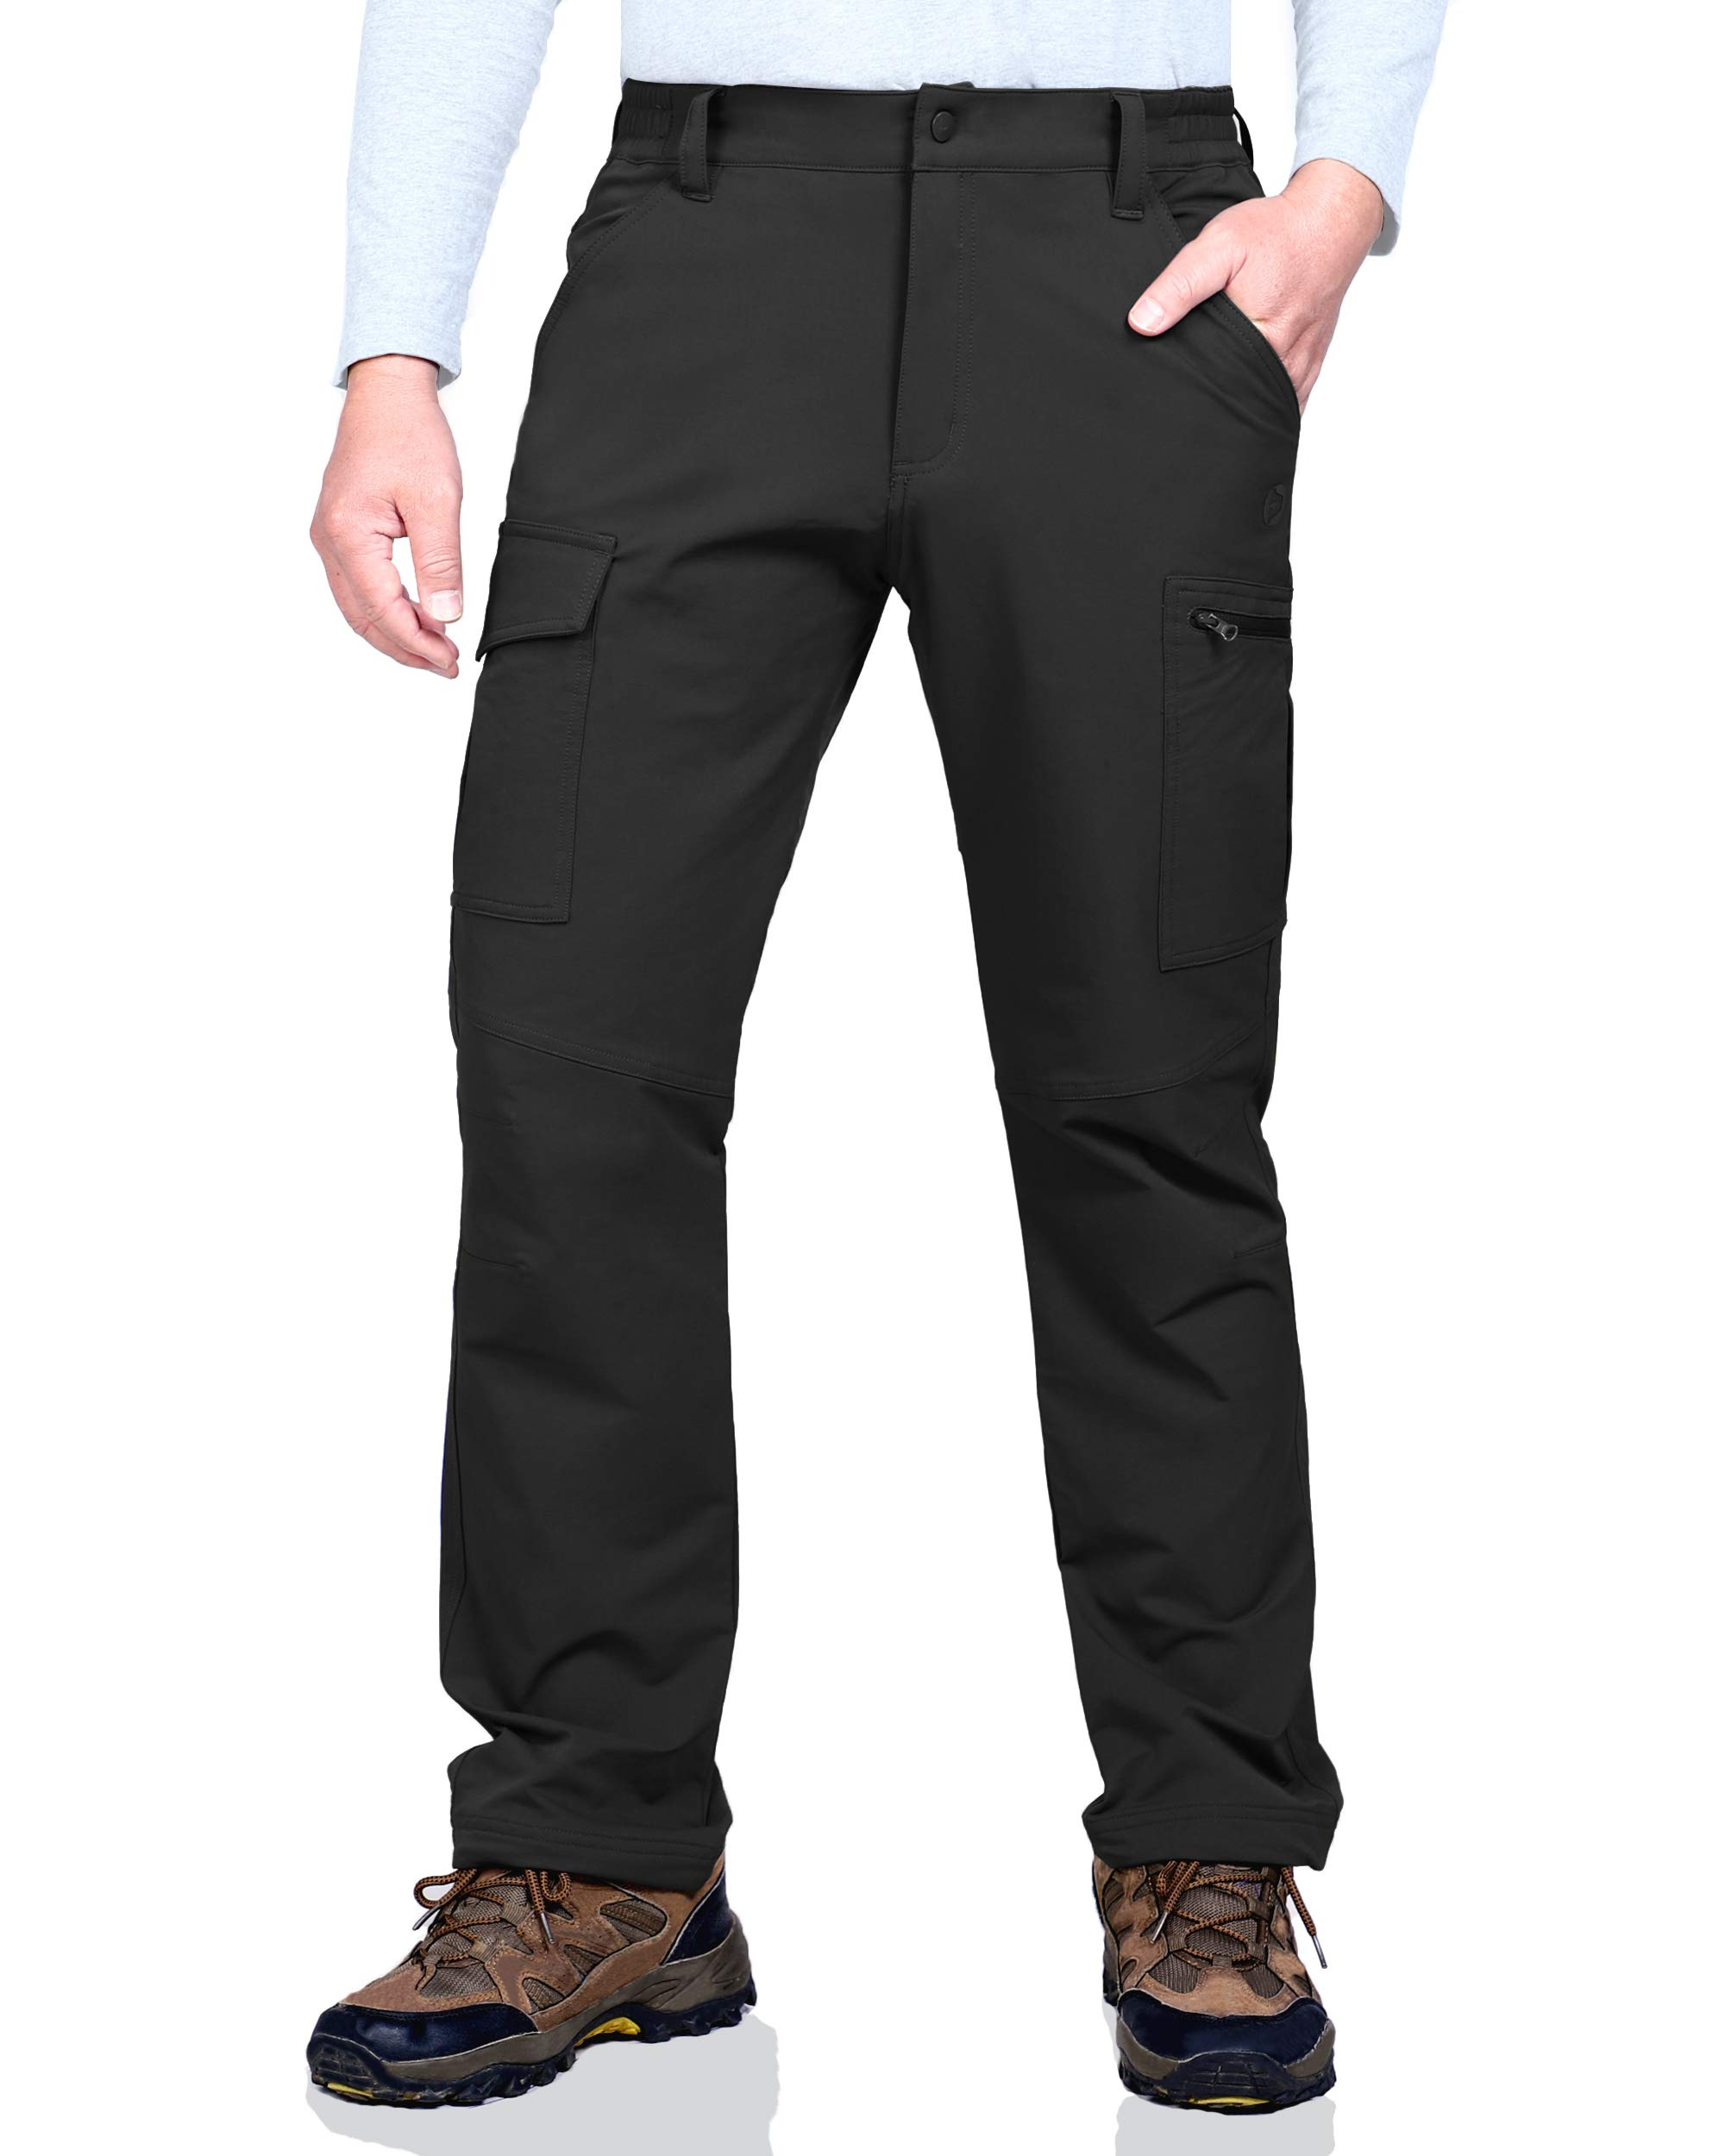 Outdoor Ventures Men's Hiking Pants Lightweight Comfy Stretch Water Resistant Tactical Work Cargo Pants with 6 Pockets